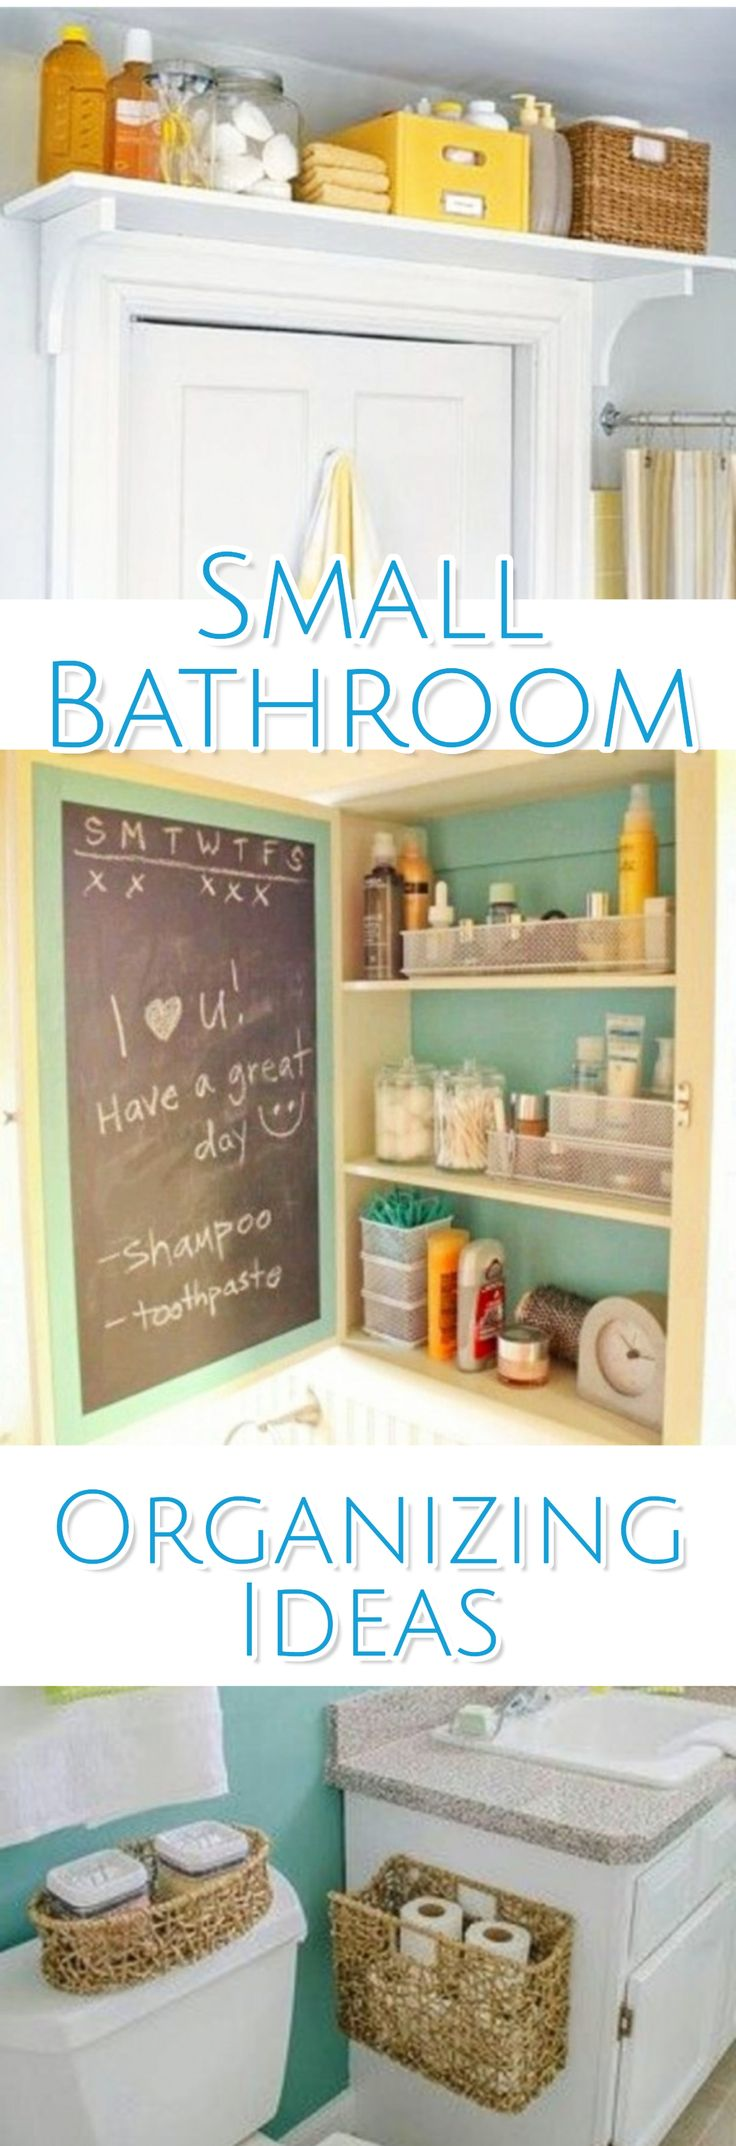 Small Bathroom Organizing Ideas - Creative Ways to get More Space and More Storage in a Small Bathroom